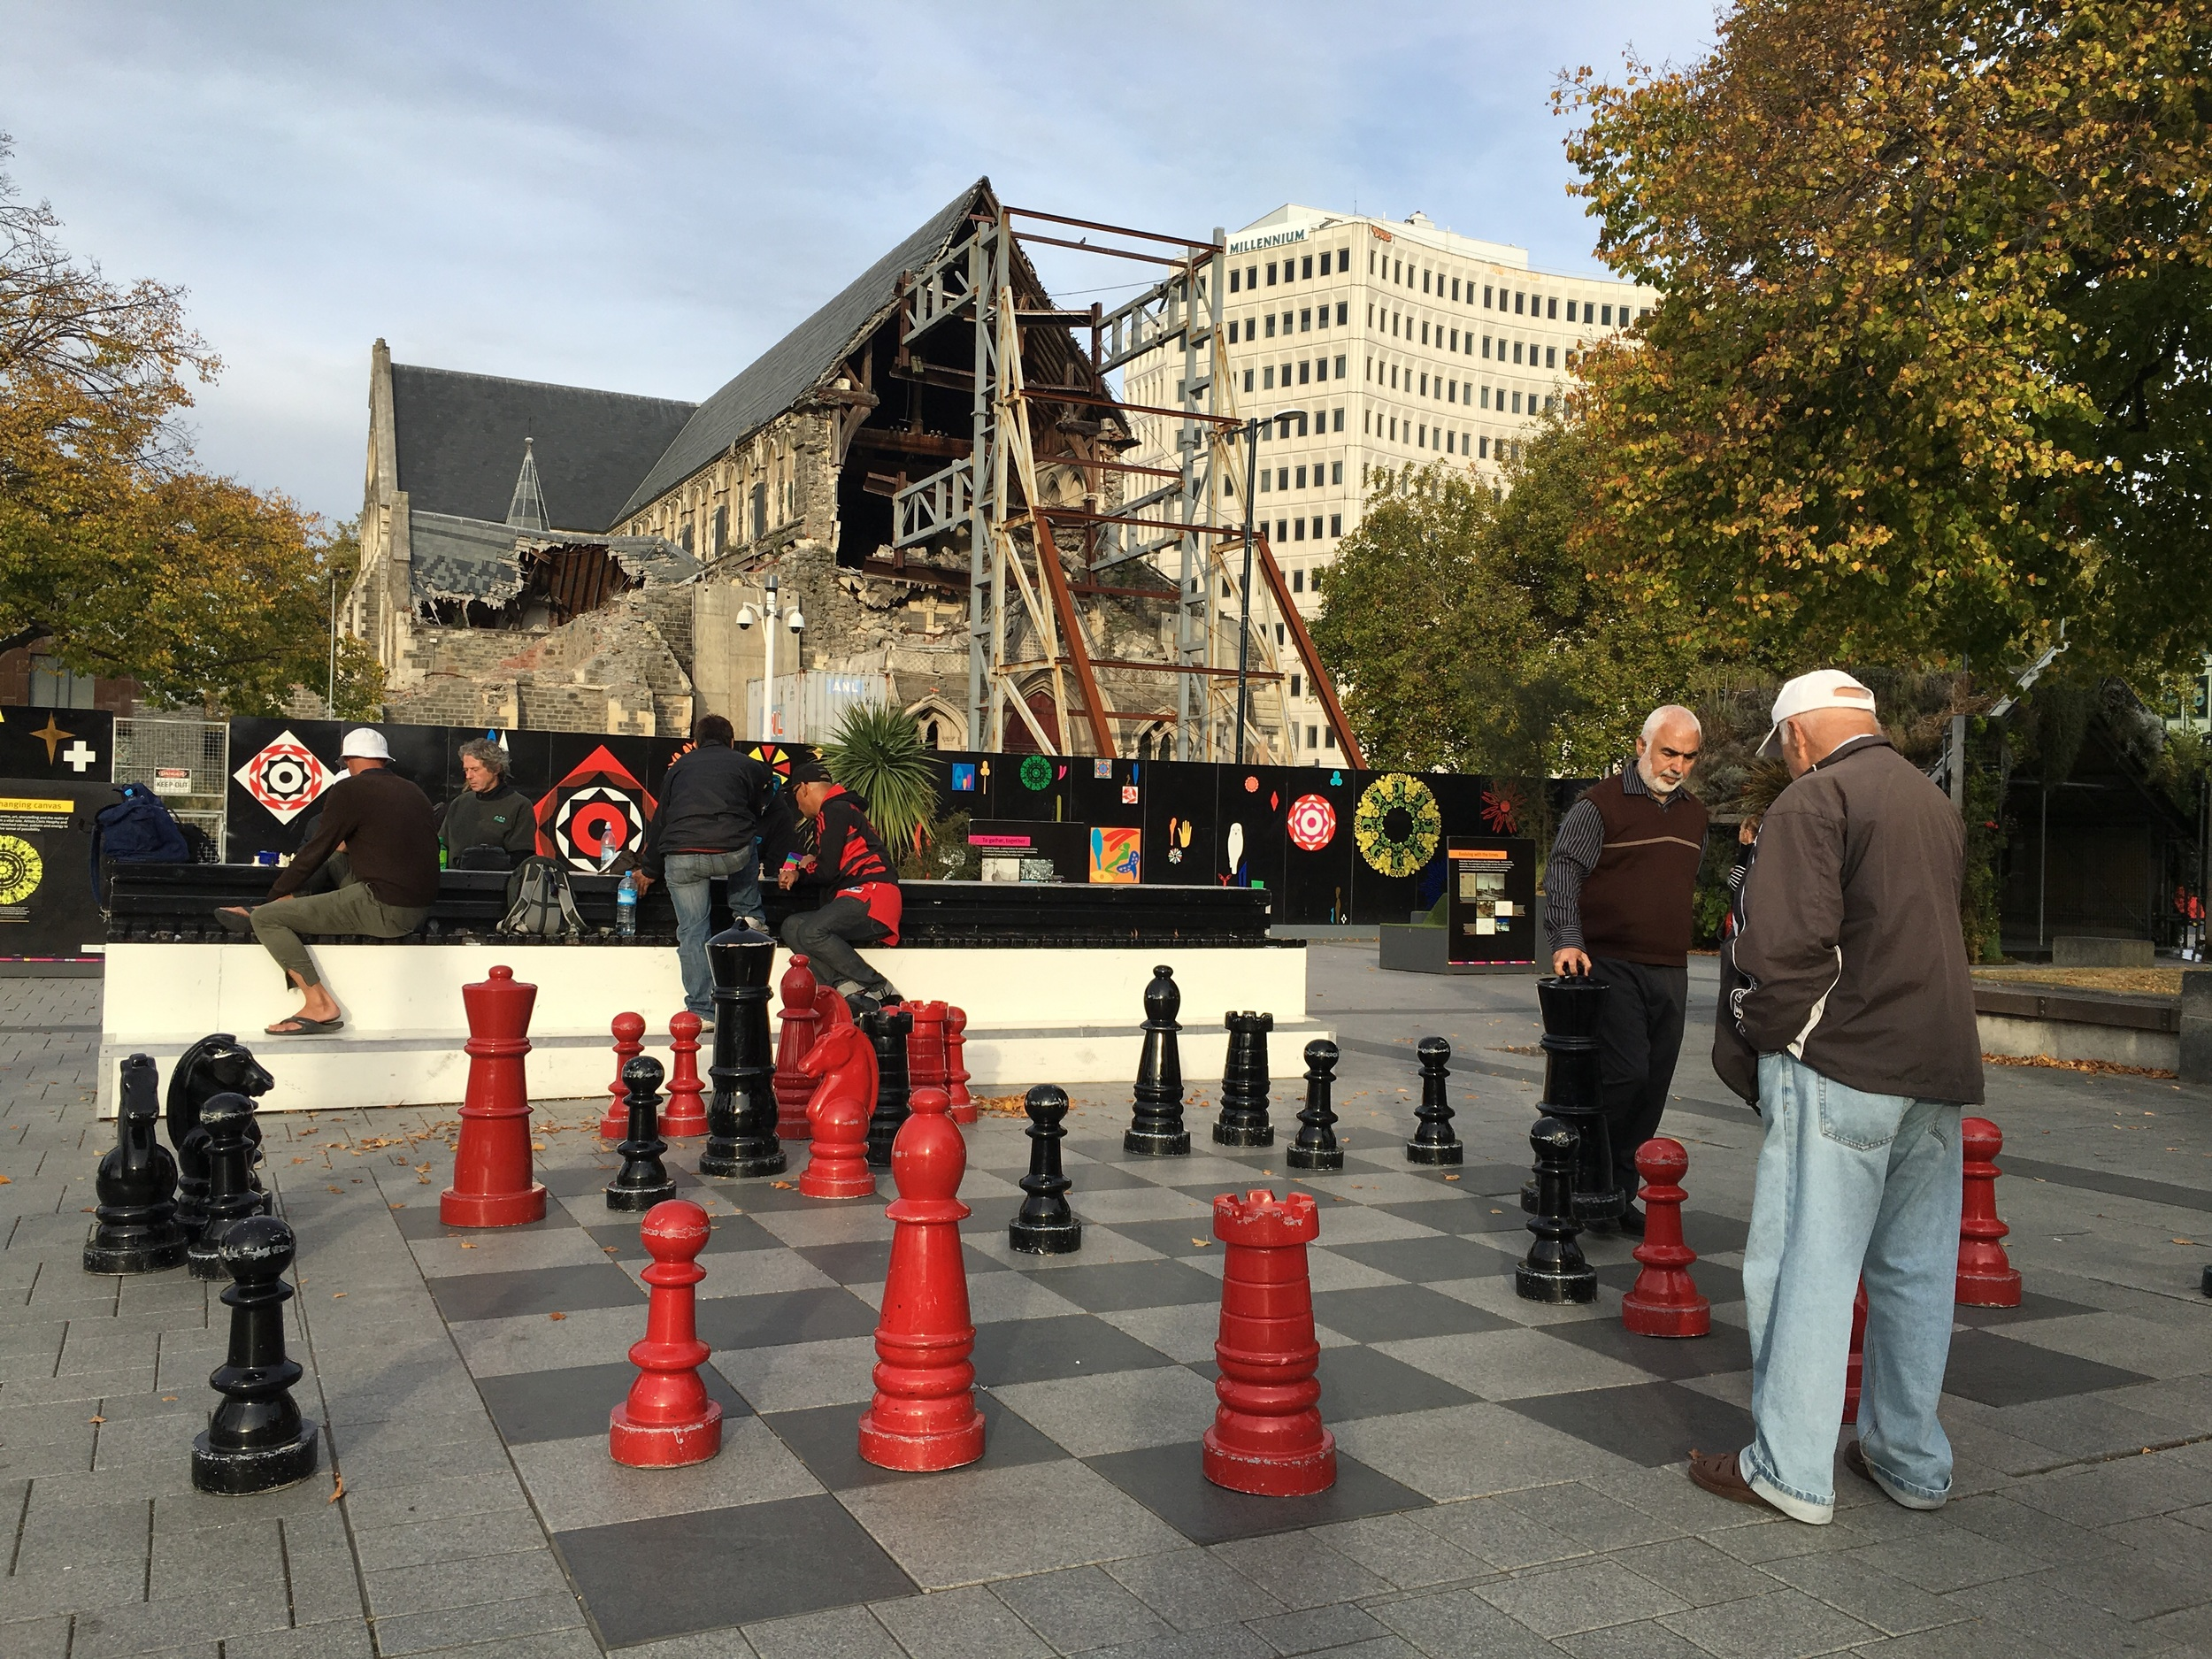 Christchurch Cathedral in center of town, still damaged. Big fight between city/church/citizens over whether to tear down or renovate